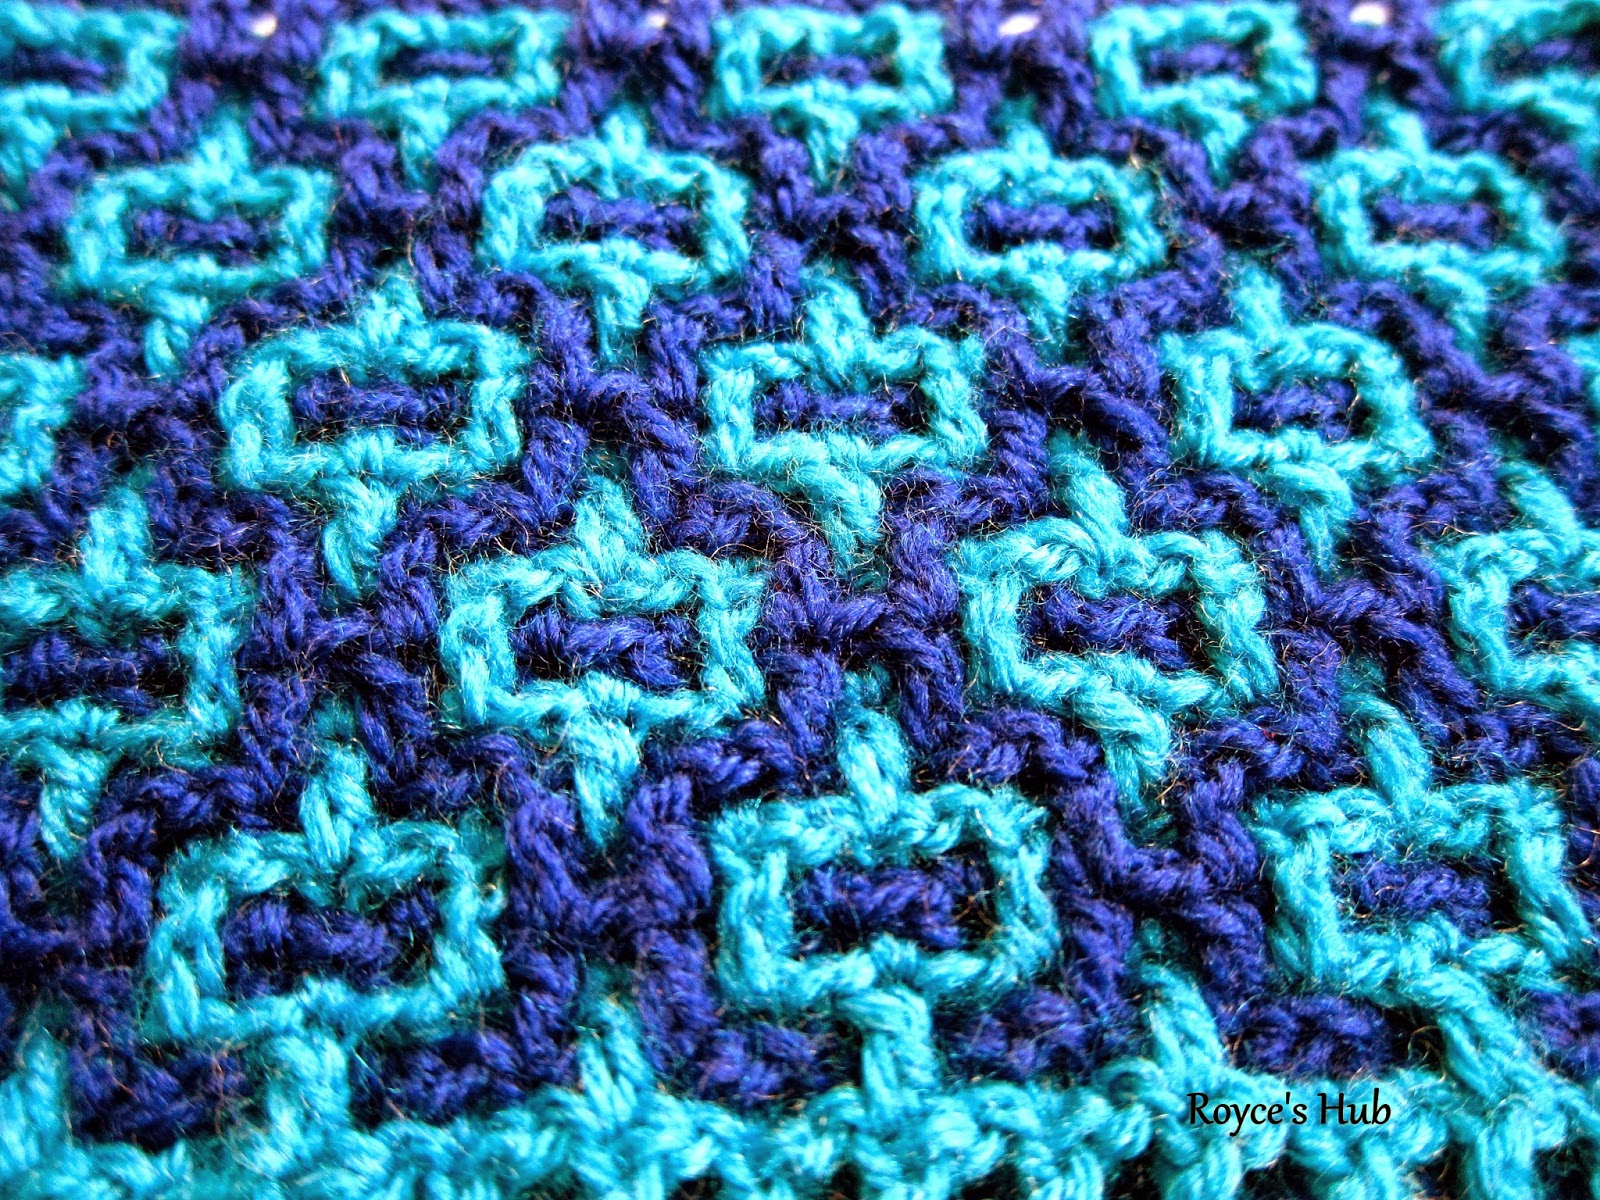 http://roycedavids.blogspot.ae/2015/01/interlocking-crochet-horizontal-and.html